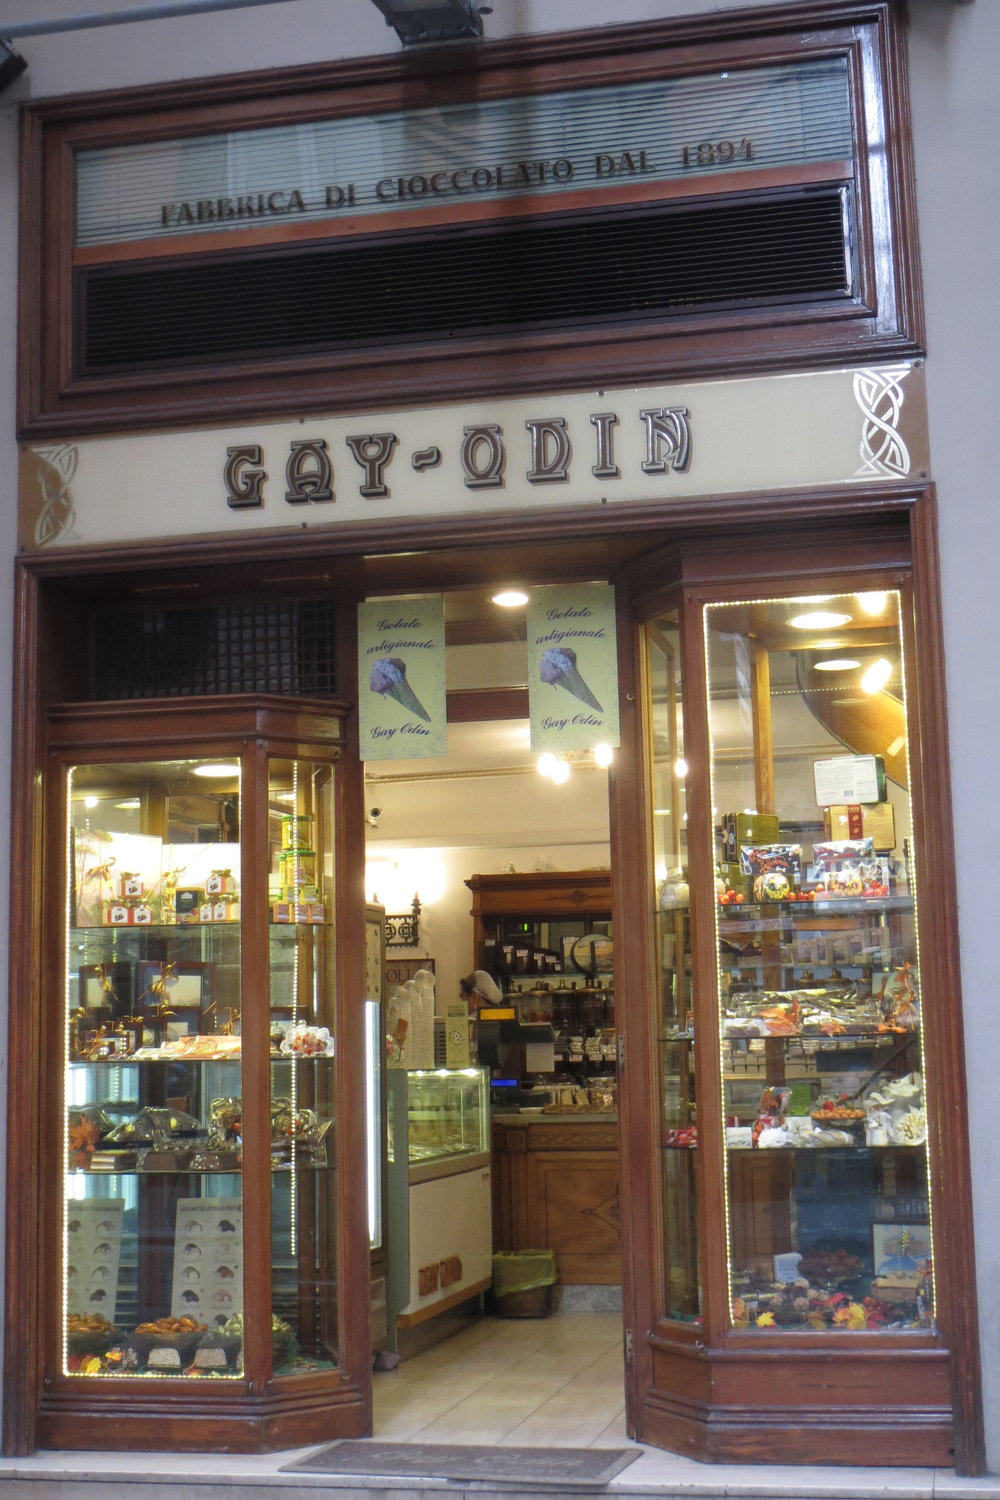 The chocolate shop Gay Odin.